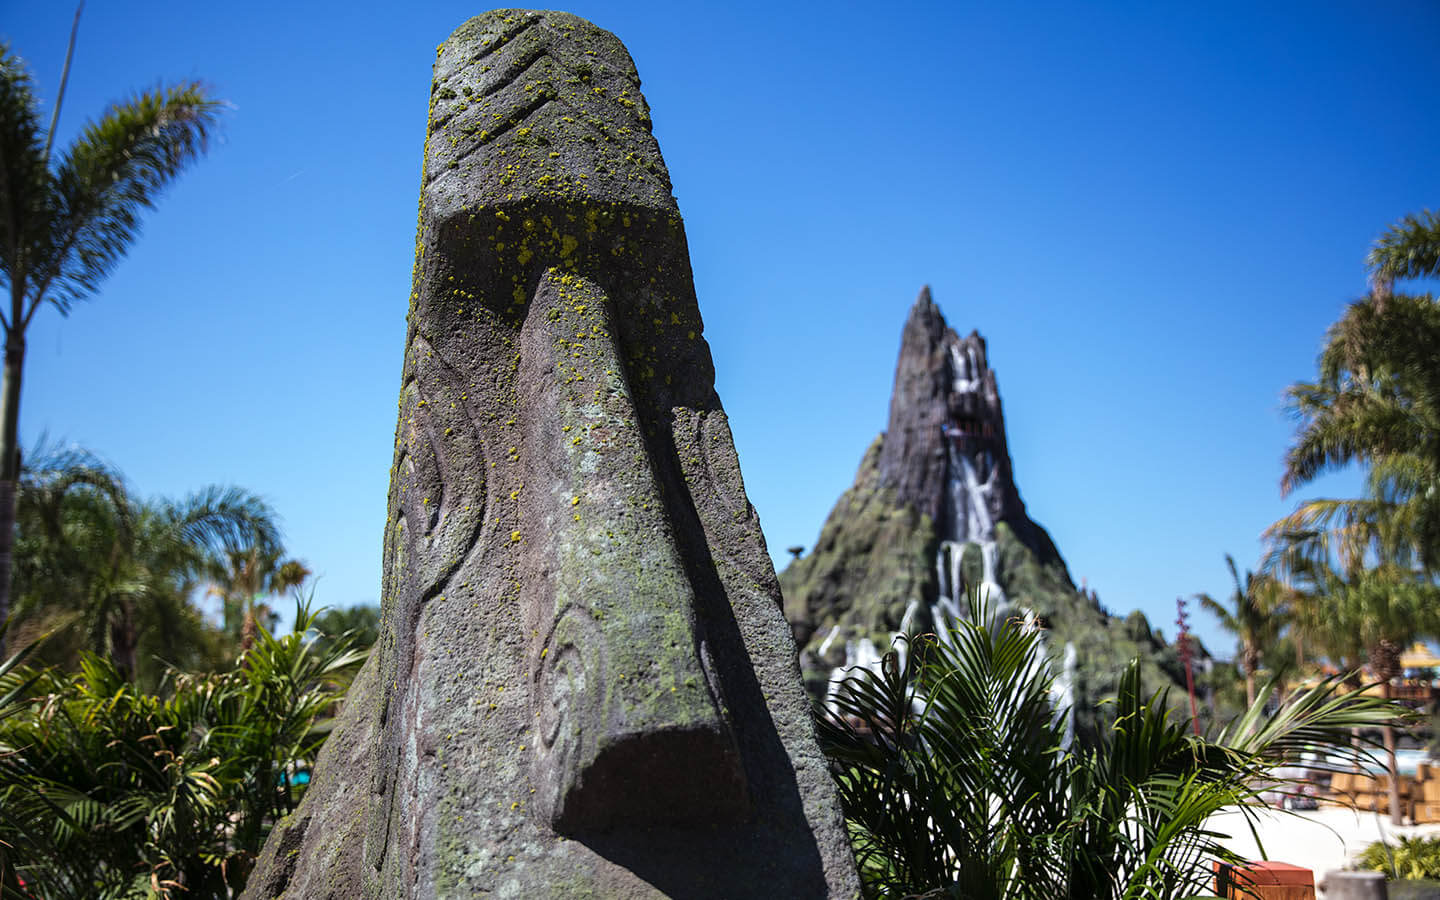 The Frog Family Guide to Universal's Volcano Bay